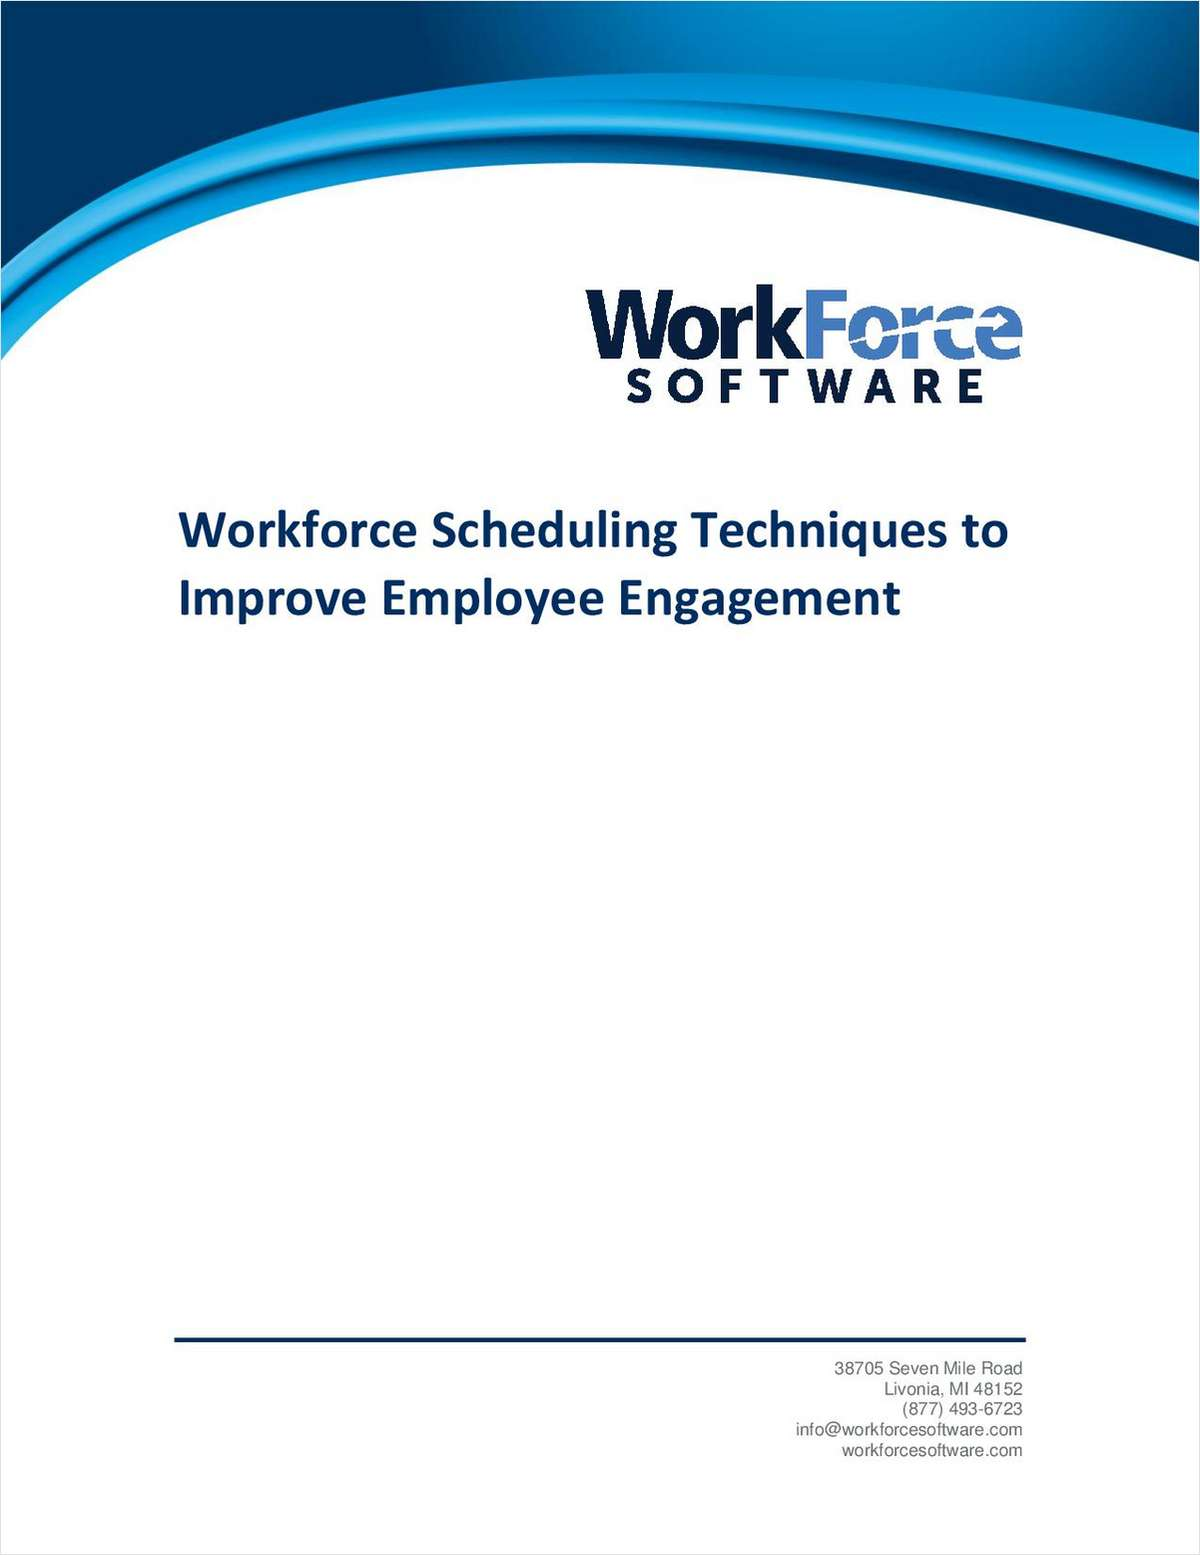 These Workforce Scheduling Techniques Will Improve Employee Engagement